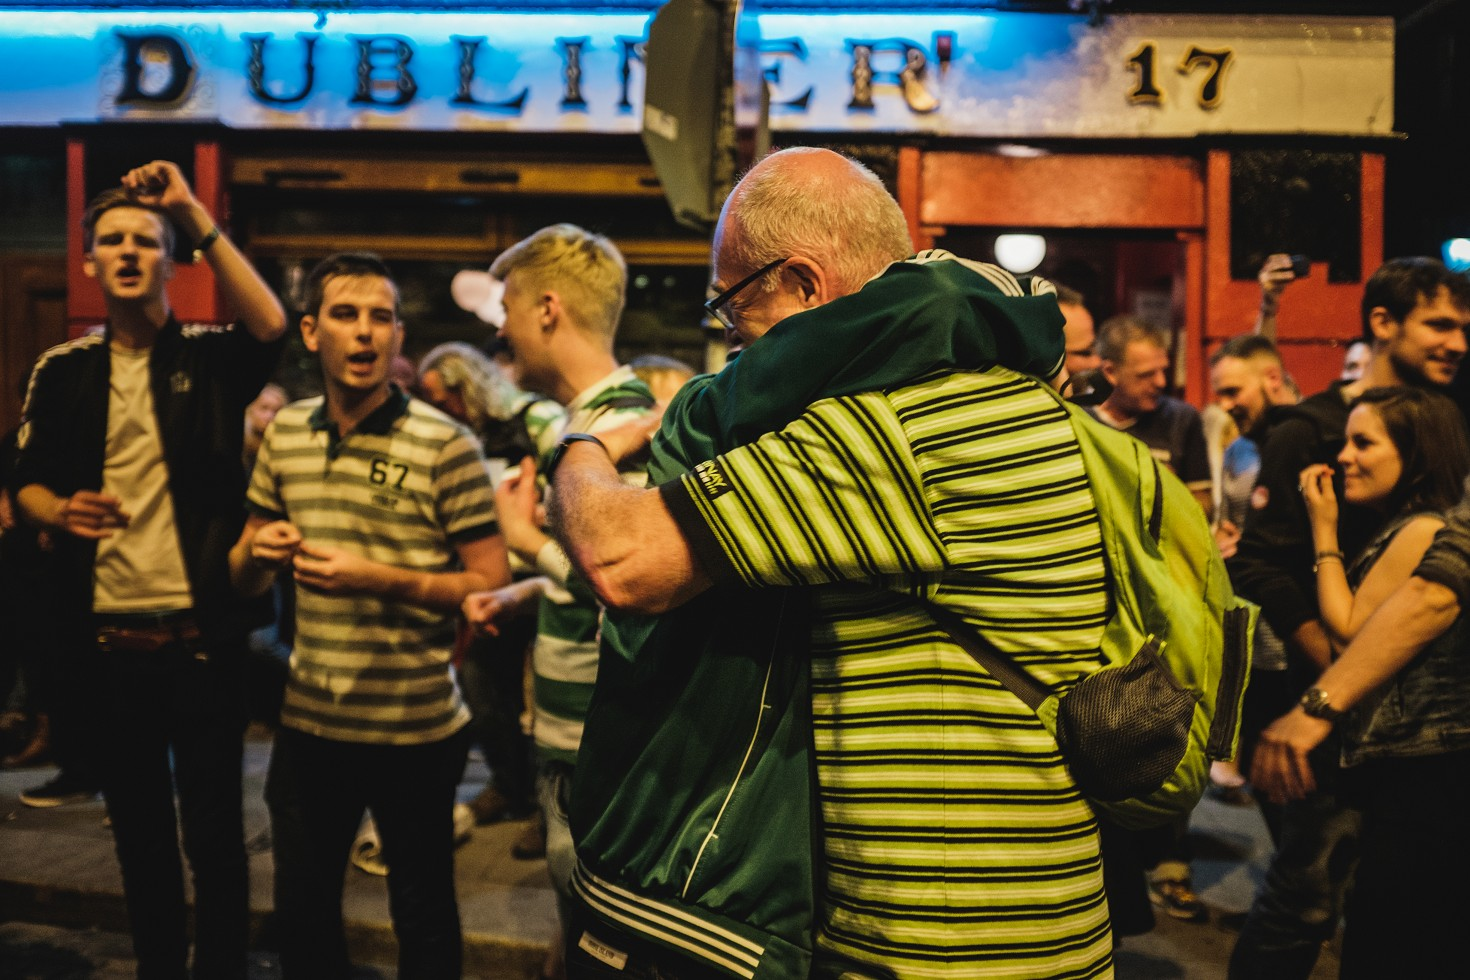 Celtic-Barca-Barcelona-Dublin-Temple-Bar-Aviva-Ireland-Fans (4 von 68)